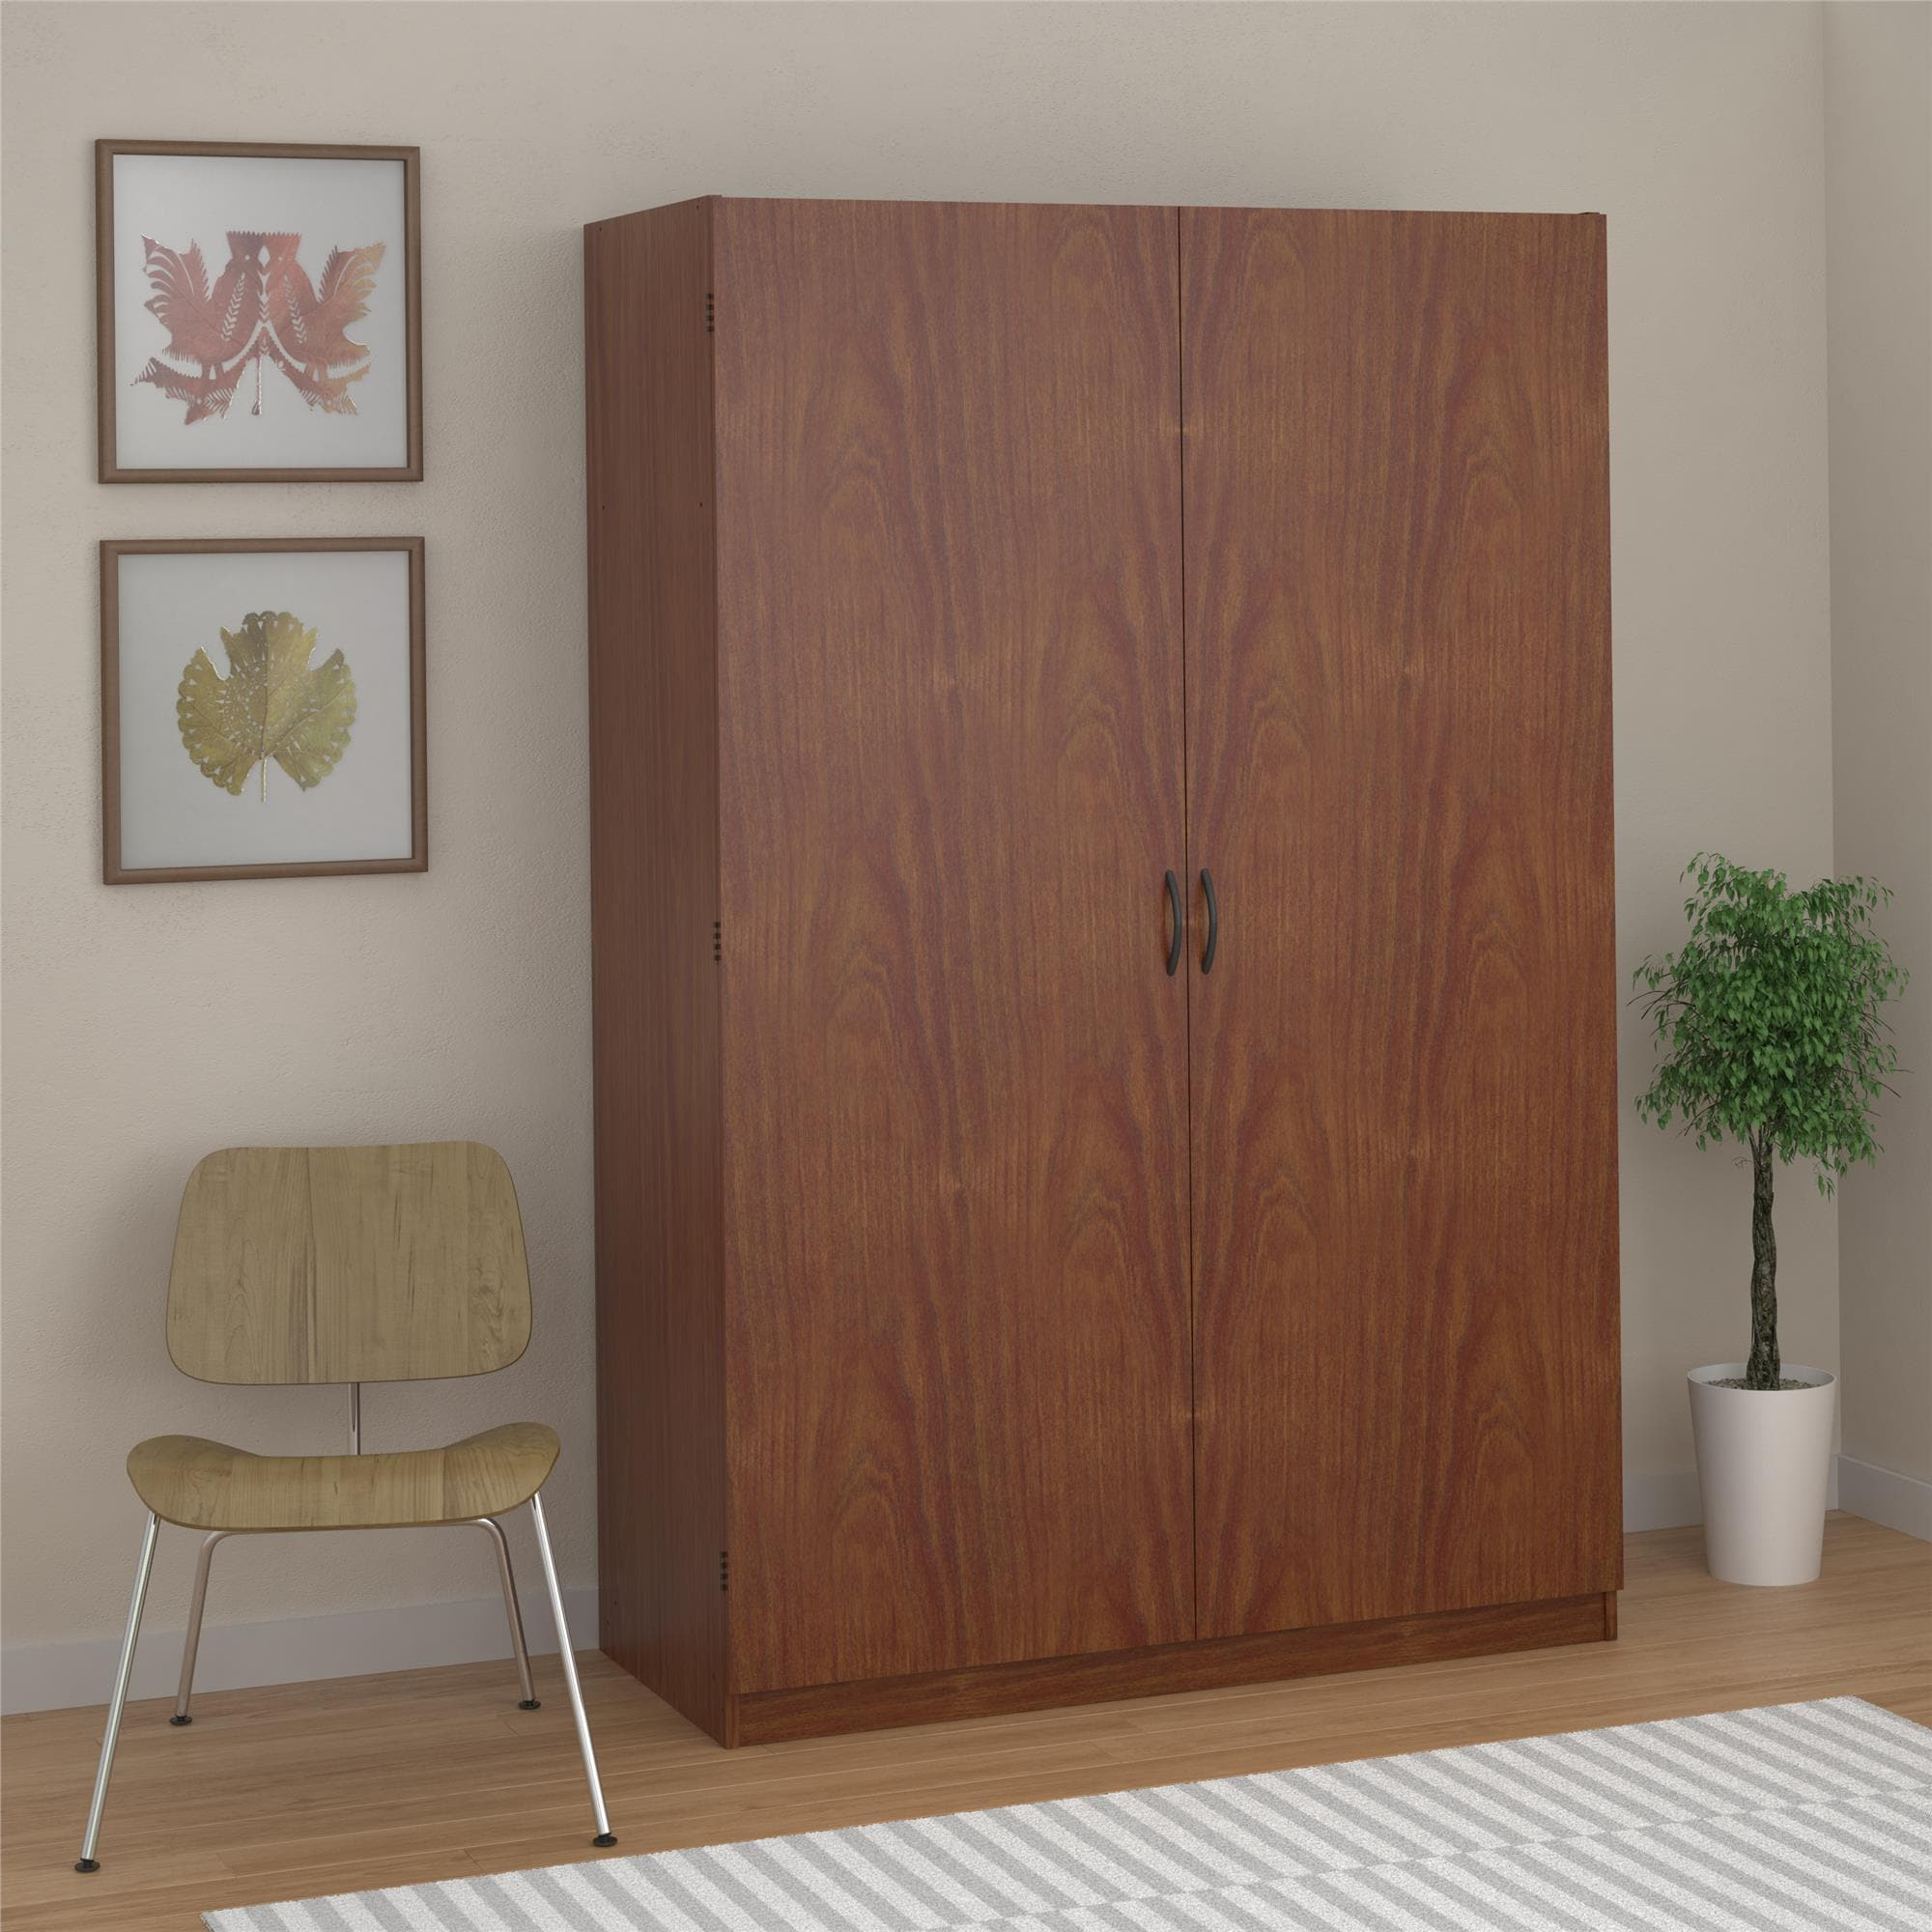 Ameriwood Home Kendrick Wardrobe Storage Closet (Wardrobe...